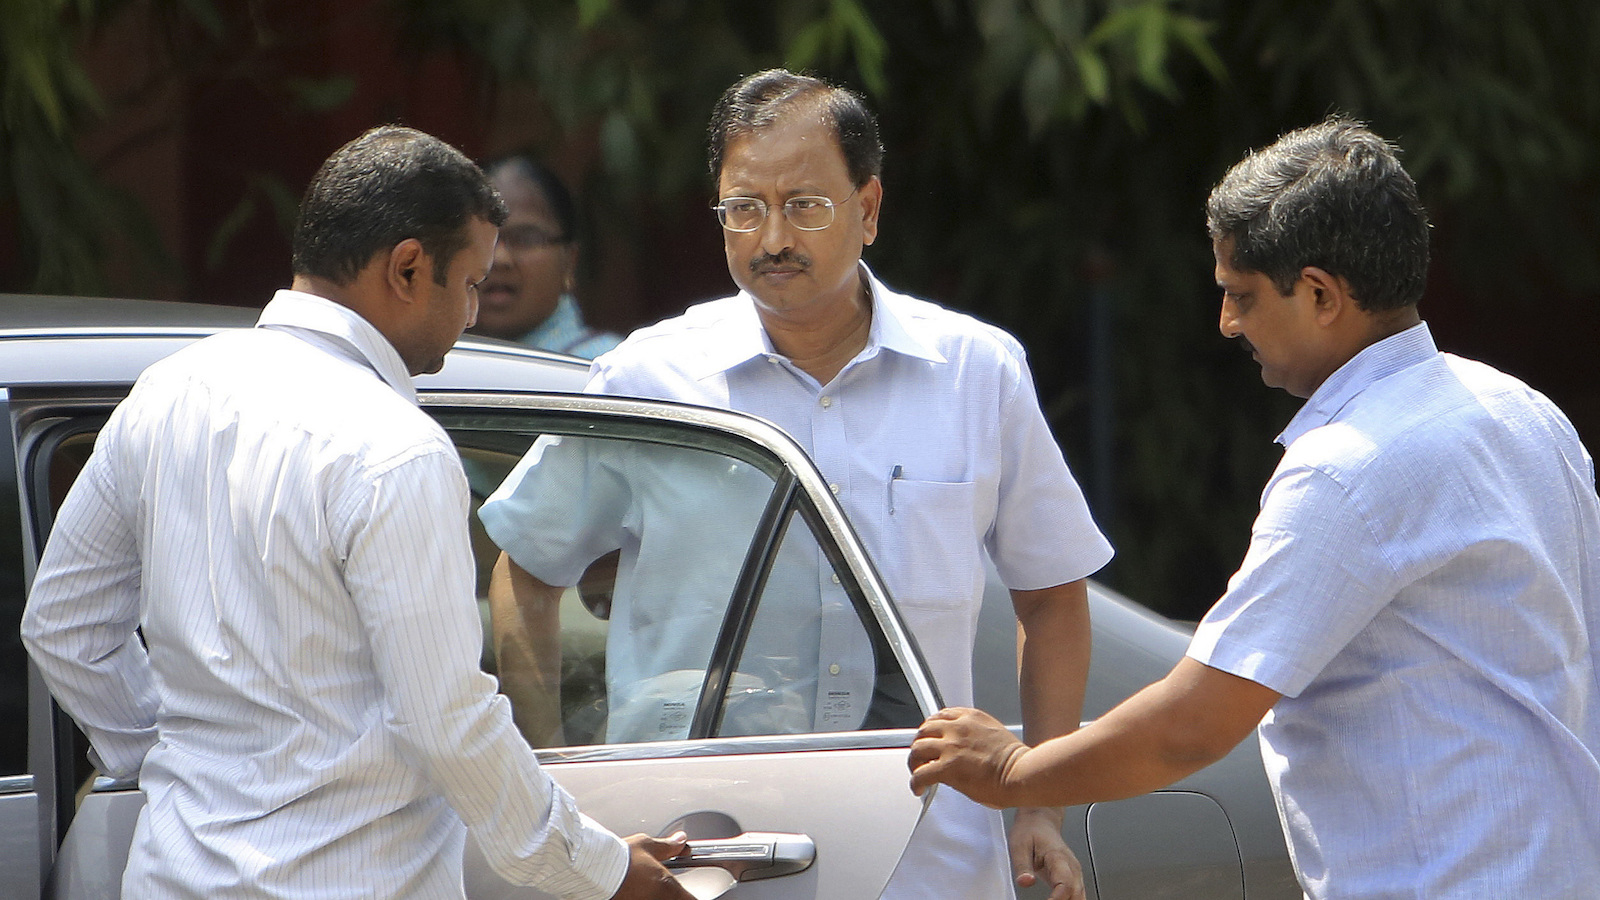 Satyam Computer Services founder B. Rama Raju, centre, arrives at a court in Hyderabad, India, Thursday, April 9, 2015. An Indian court on Thursday convicted Raju, the founder of the outsourcing giant and nine others on charges of stealing millions of dollars in one of the largest frauds in the country's corporate history.